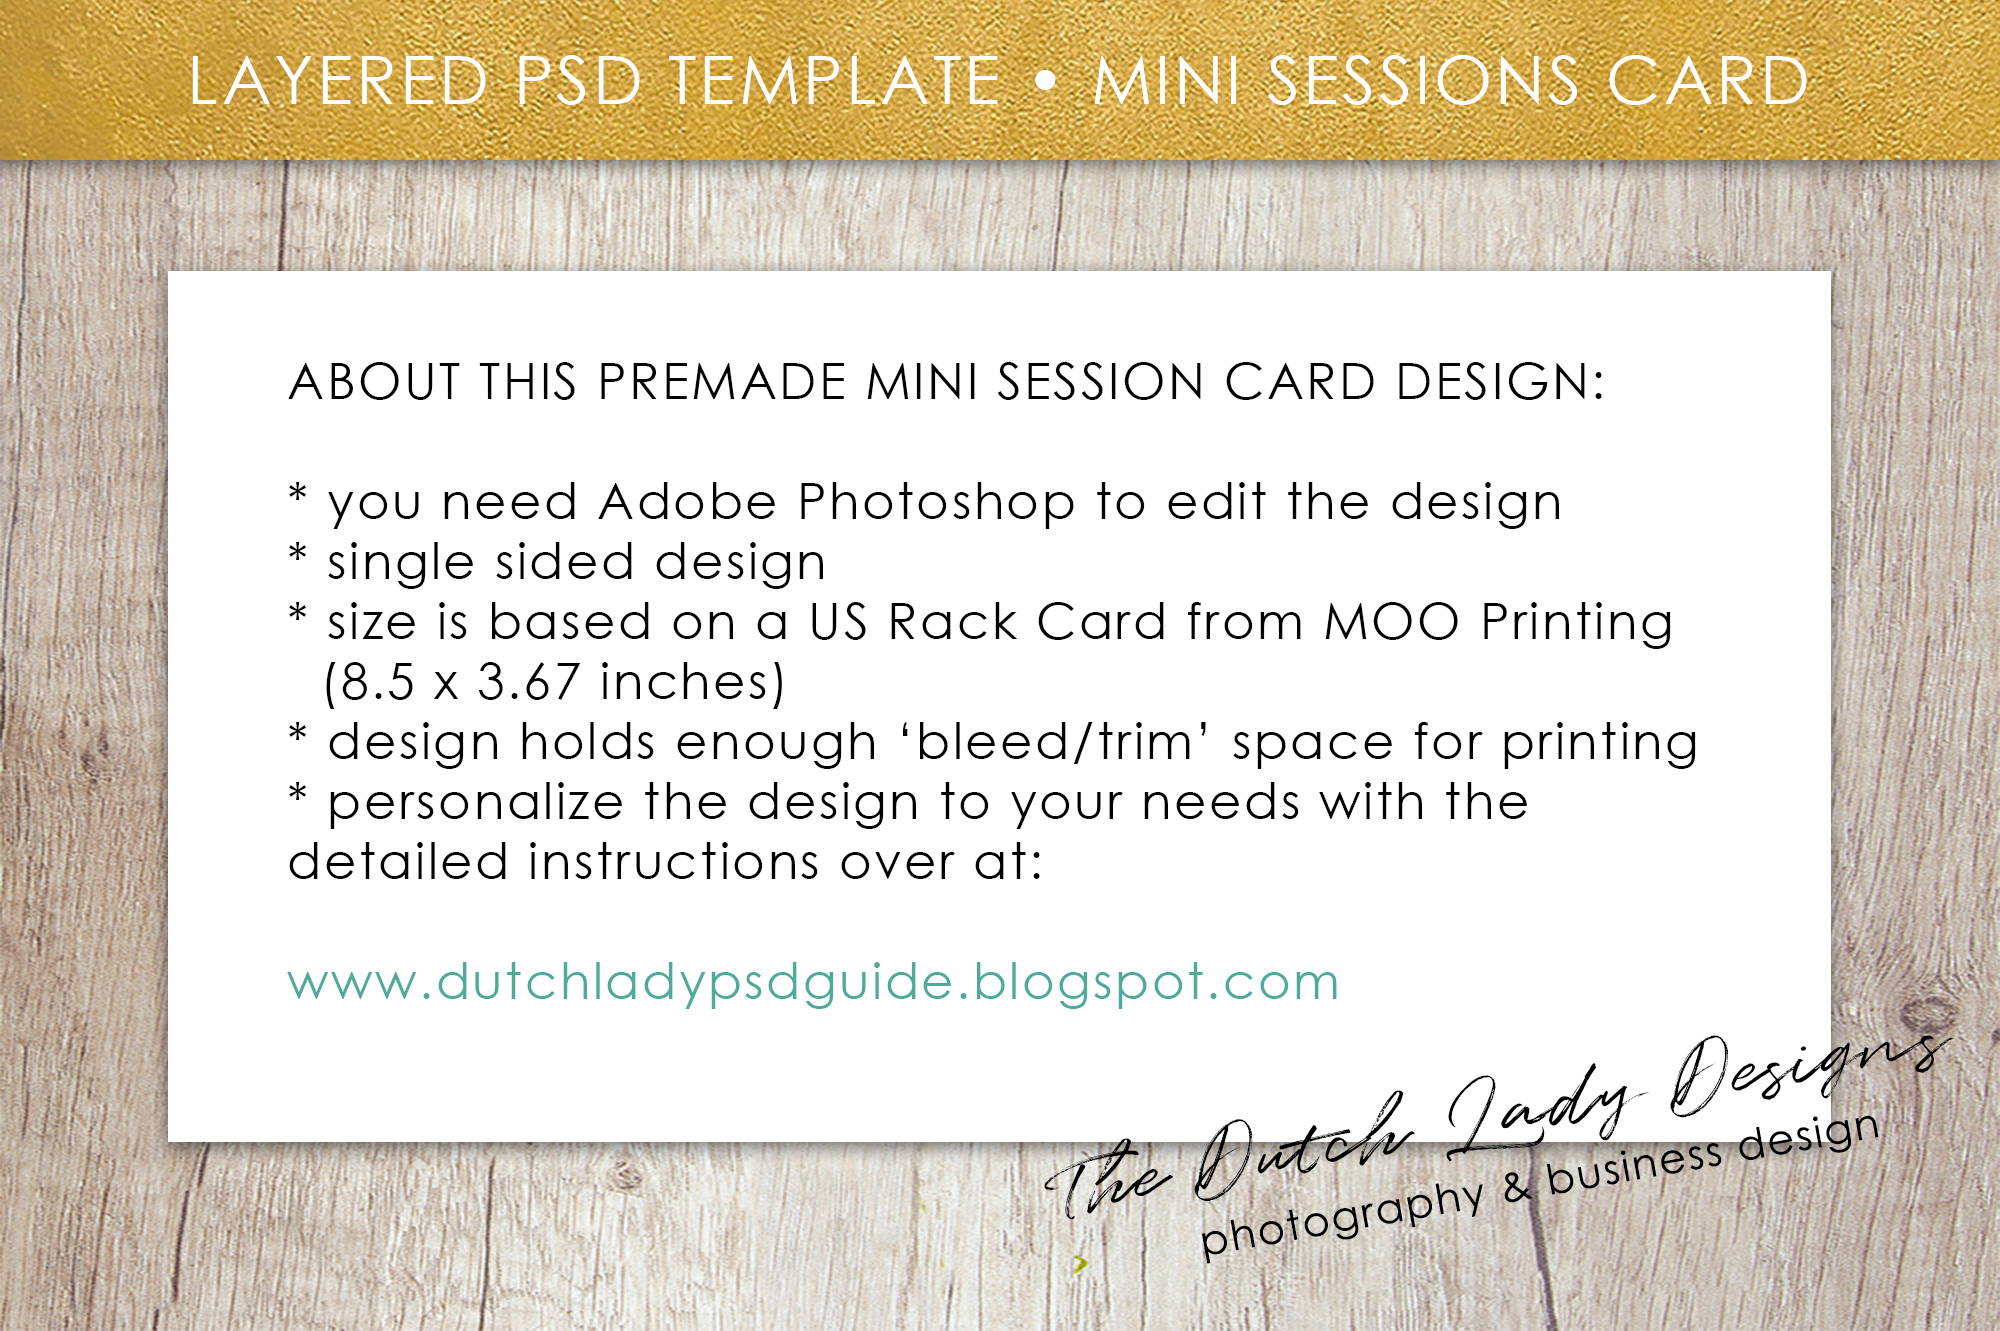 PSD Photo Mini Session Card Template - Design #30 example image 5